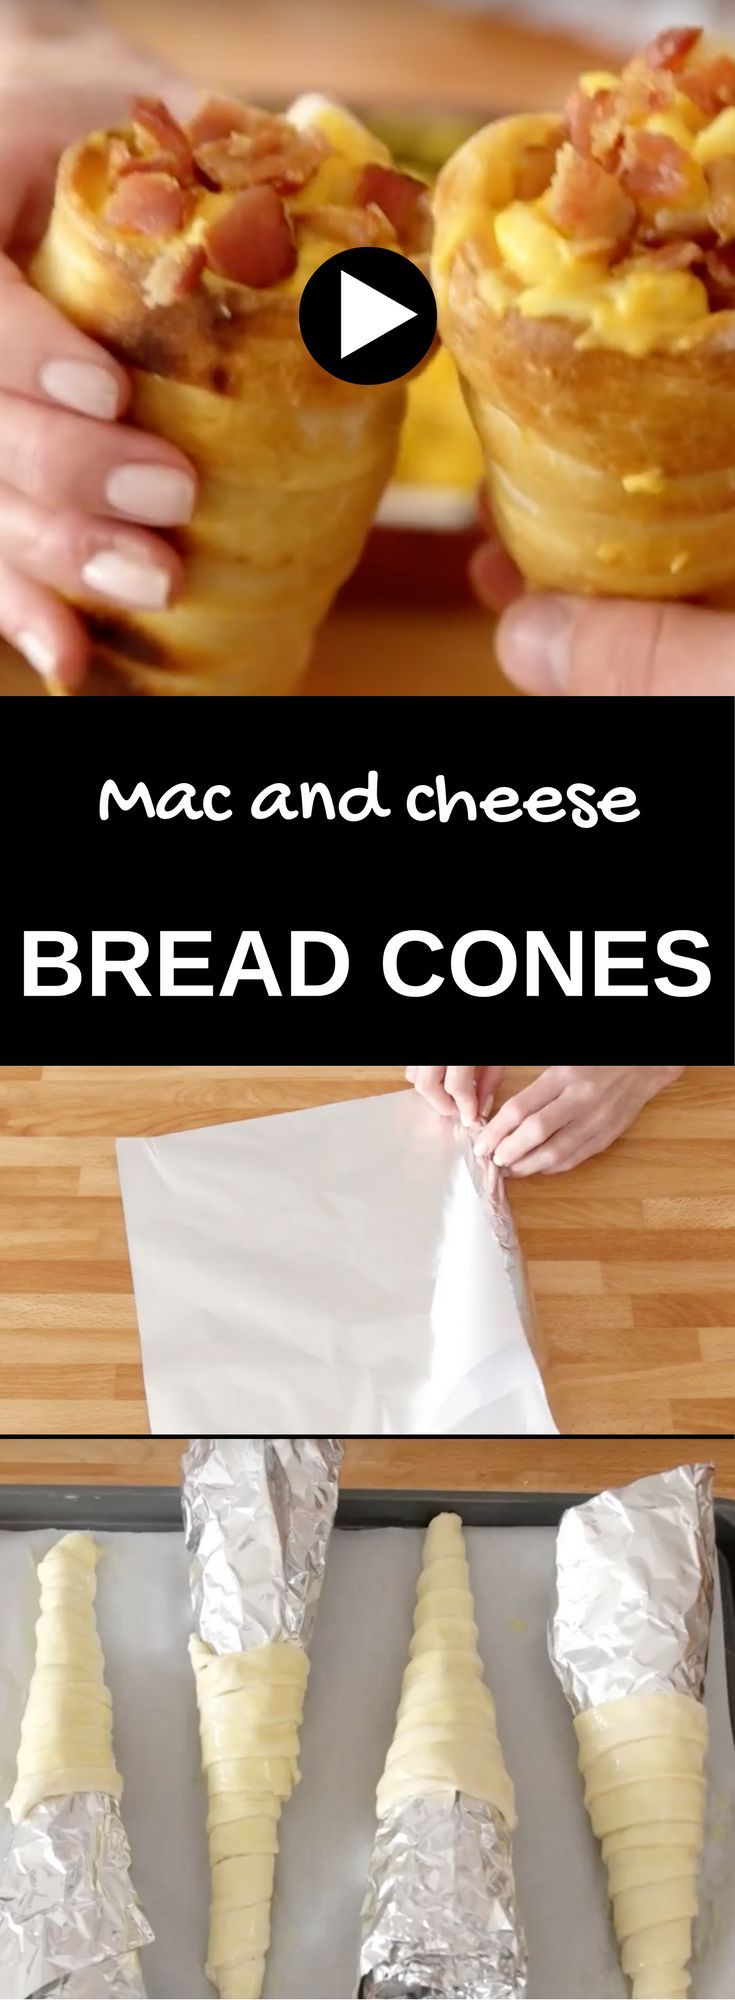 Mac and Cheese Bread Cones or Mac N' Cheese In Pizza Cones is a make-at-home version of the famous Chef Mickey's dish from Disneyland. It's definitely one of the most fun foods to make, and it only requires 3 ingredients! Make it for a surprise brunch dish, a tailgate party or a kids birthday party…